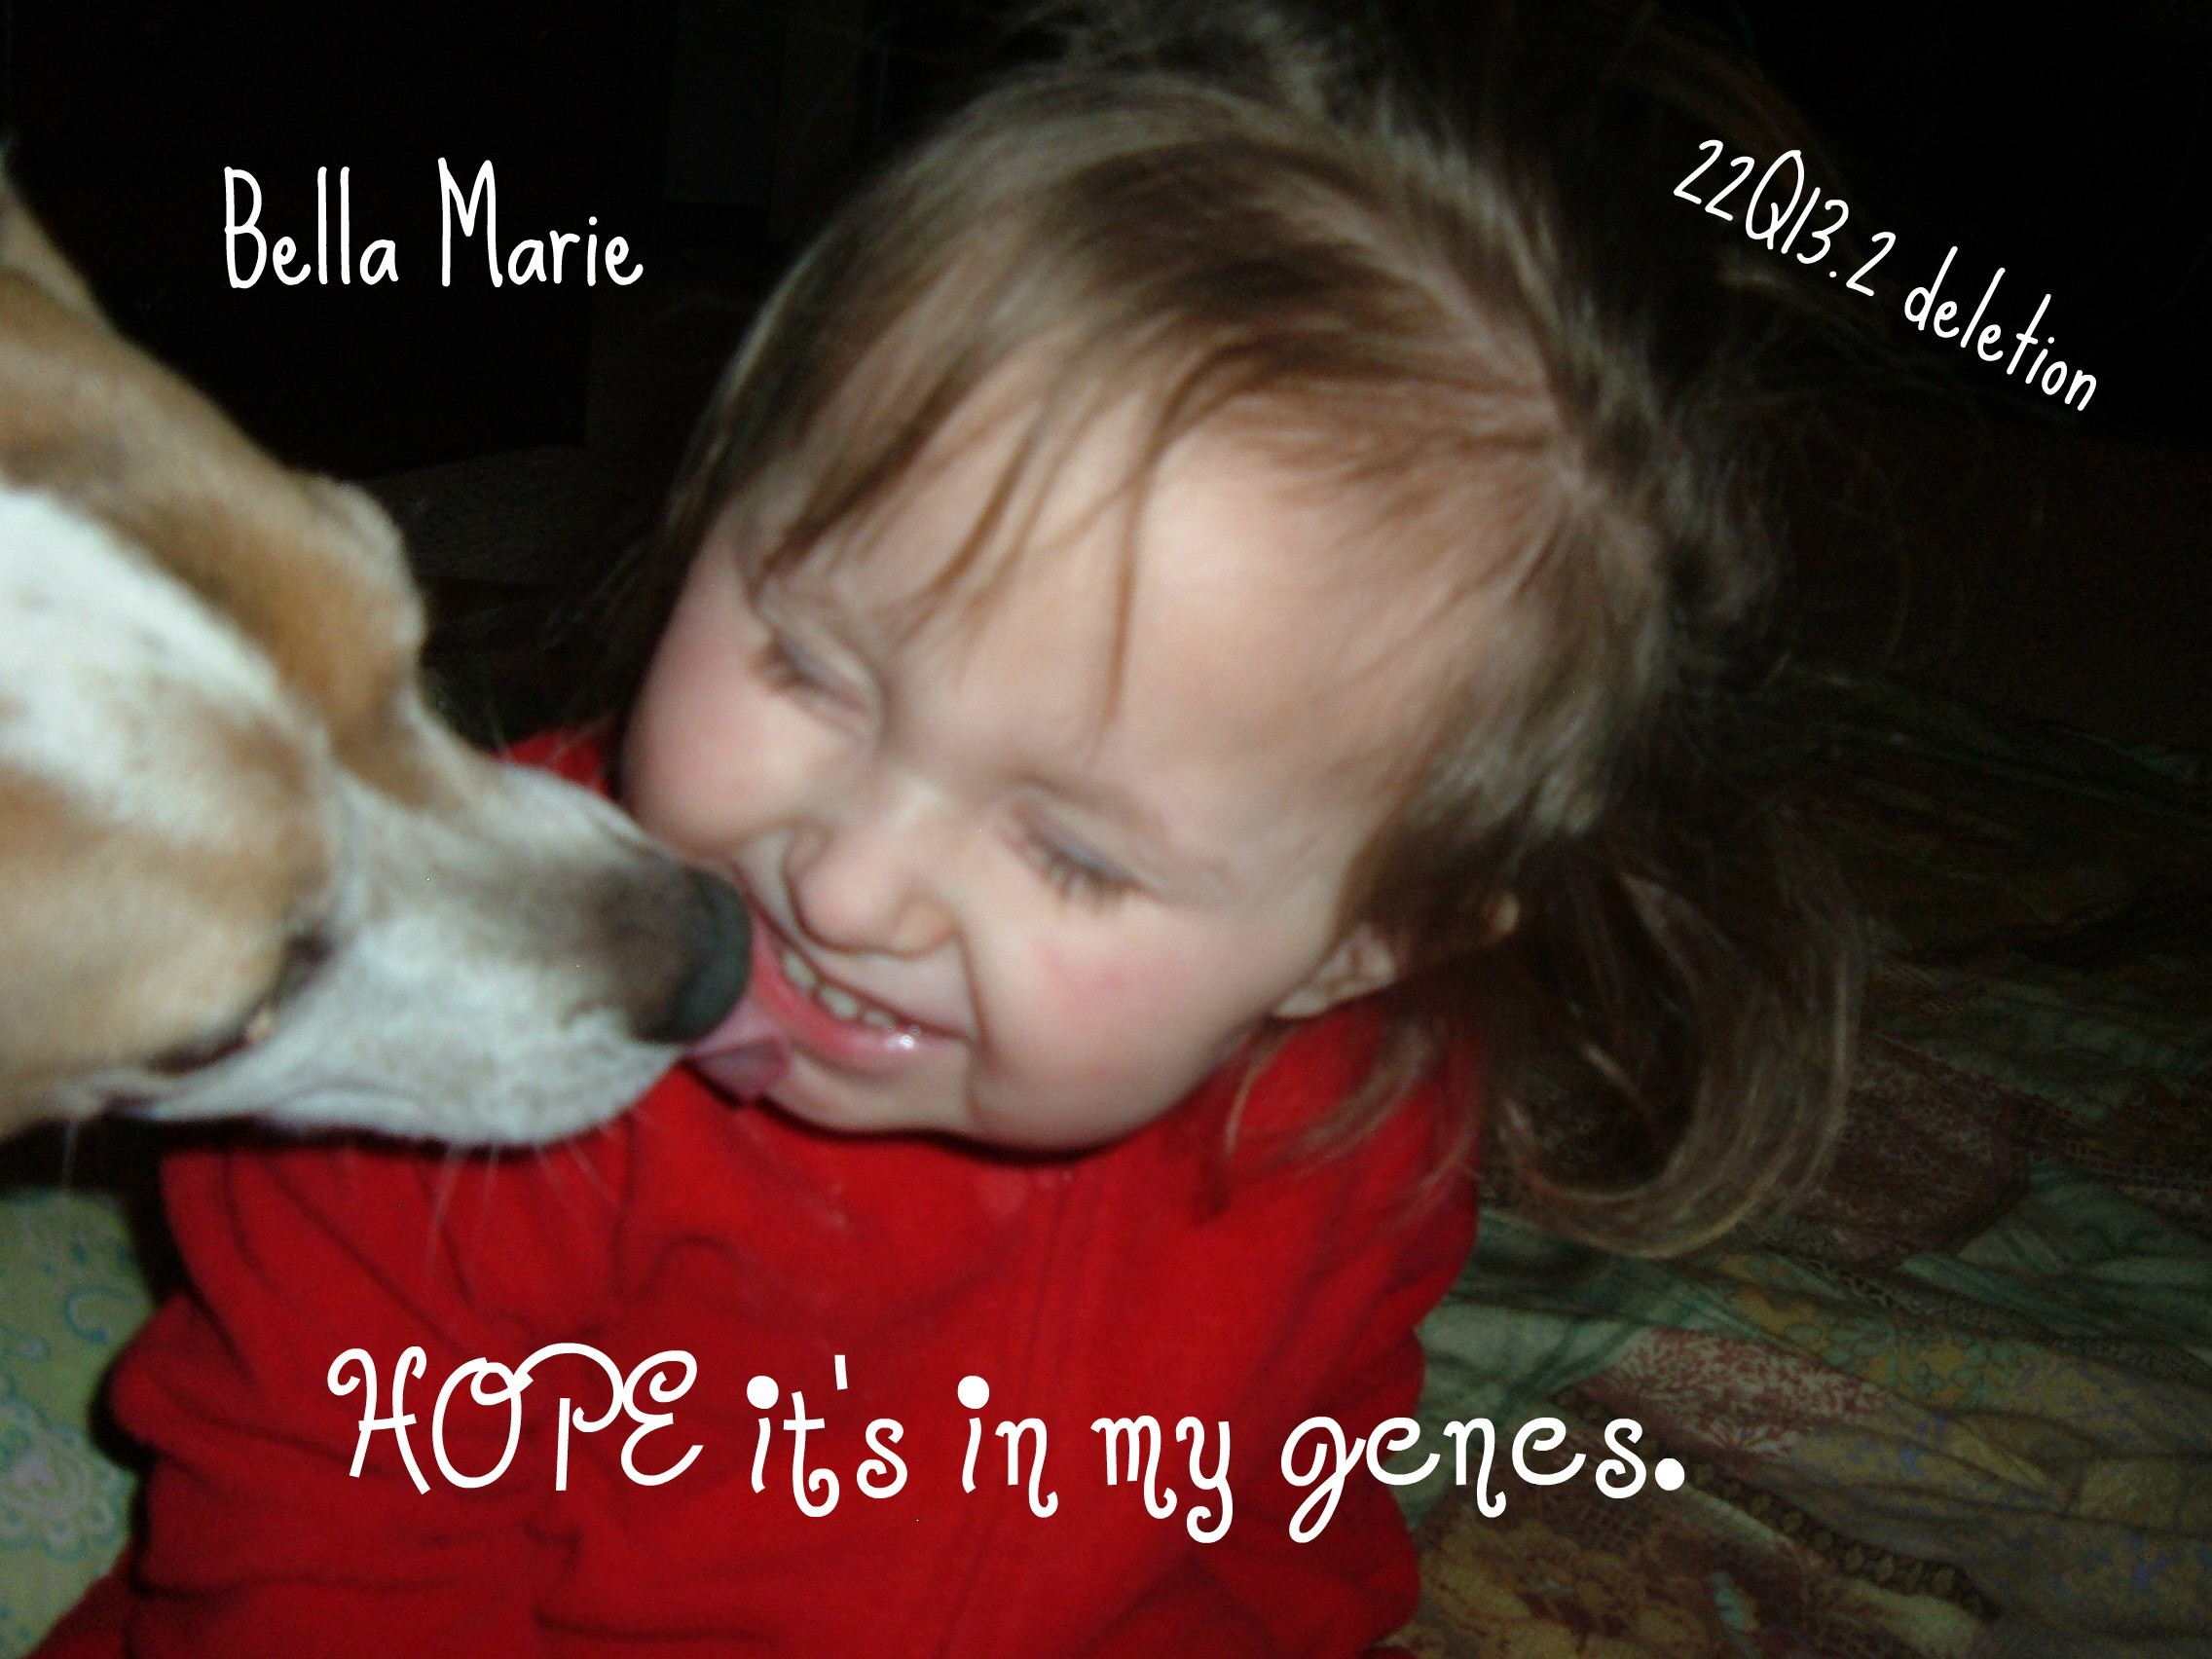 Bella has Phelan-McDermid syndrome, a rare chromosomal disorder in which a part of chromosome 22 is missing.